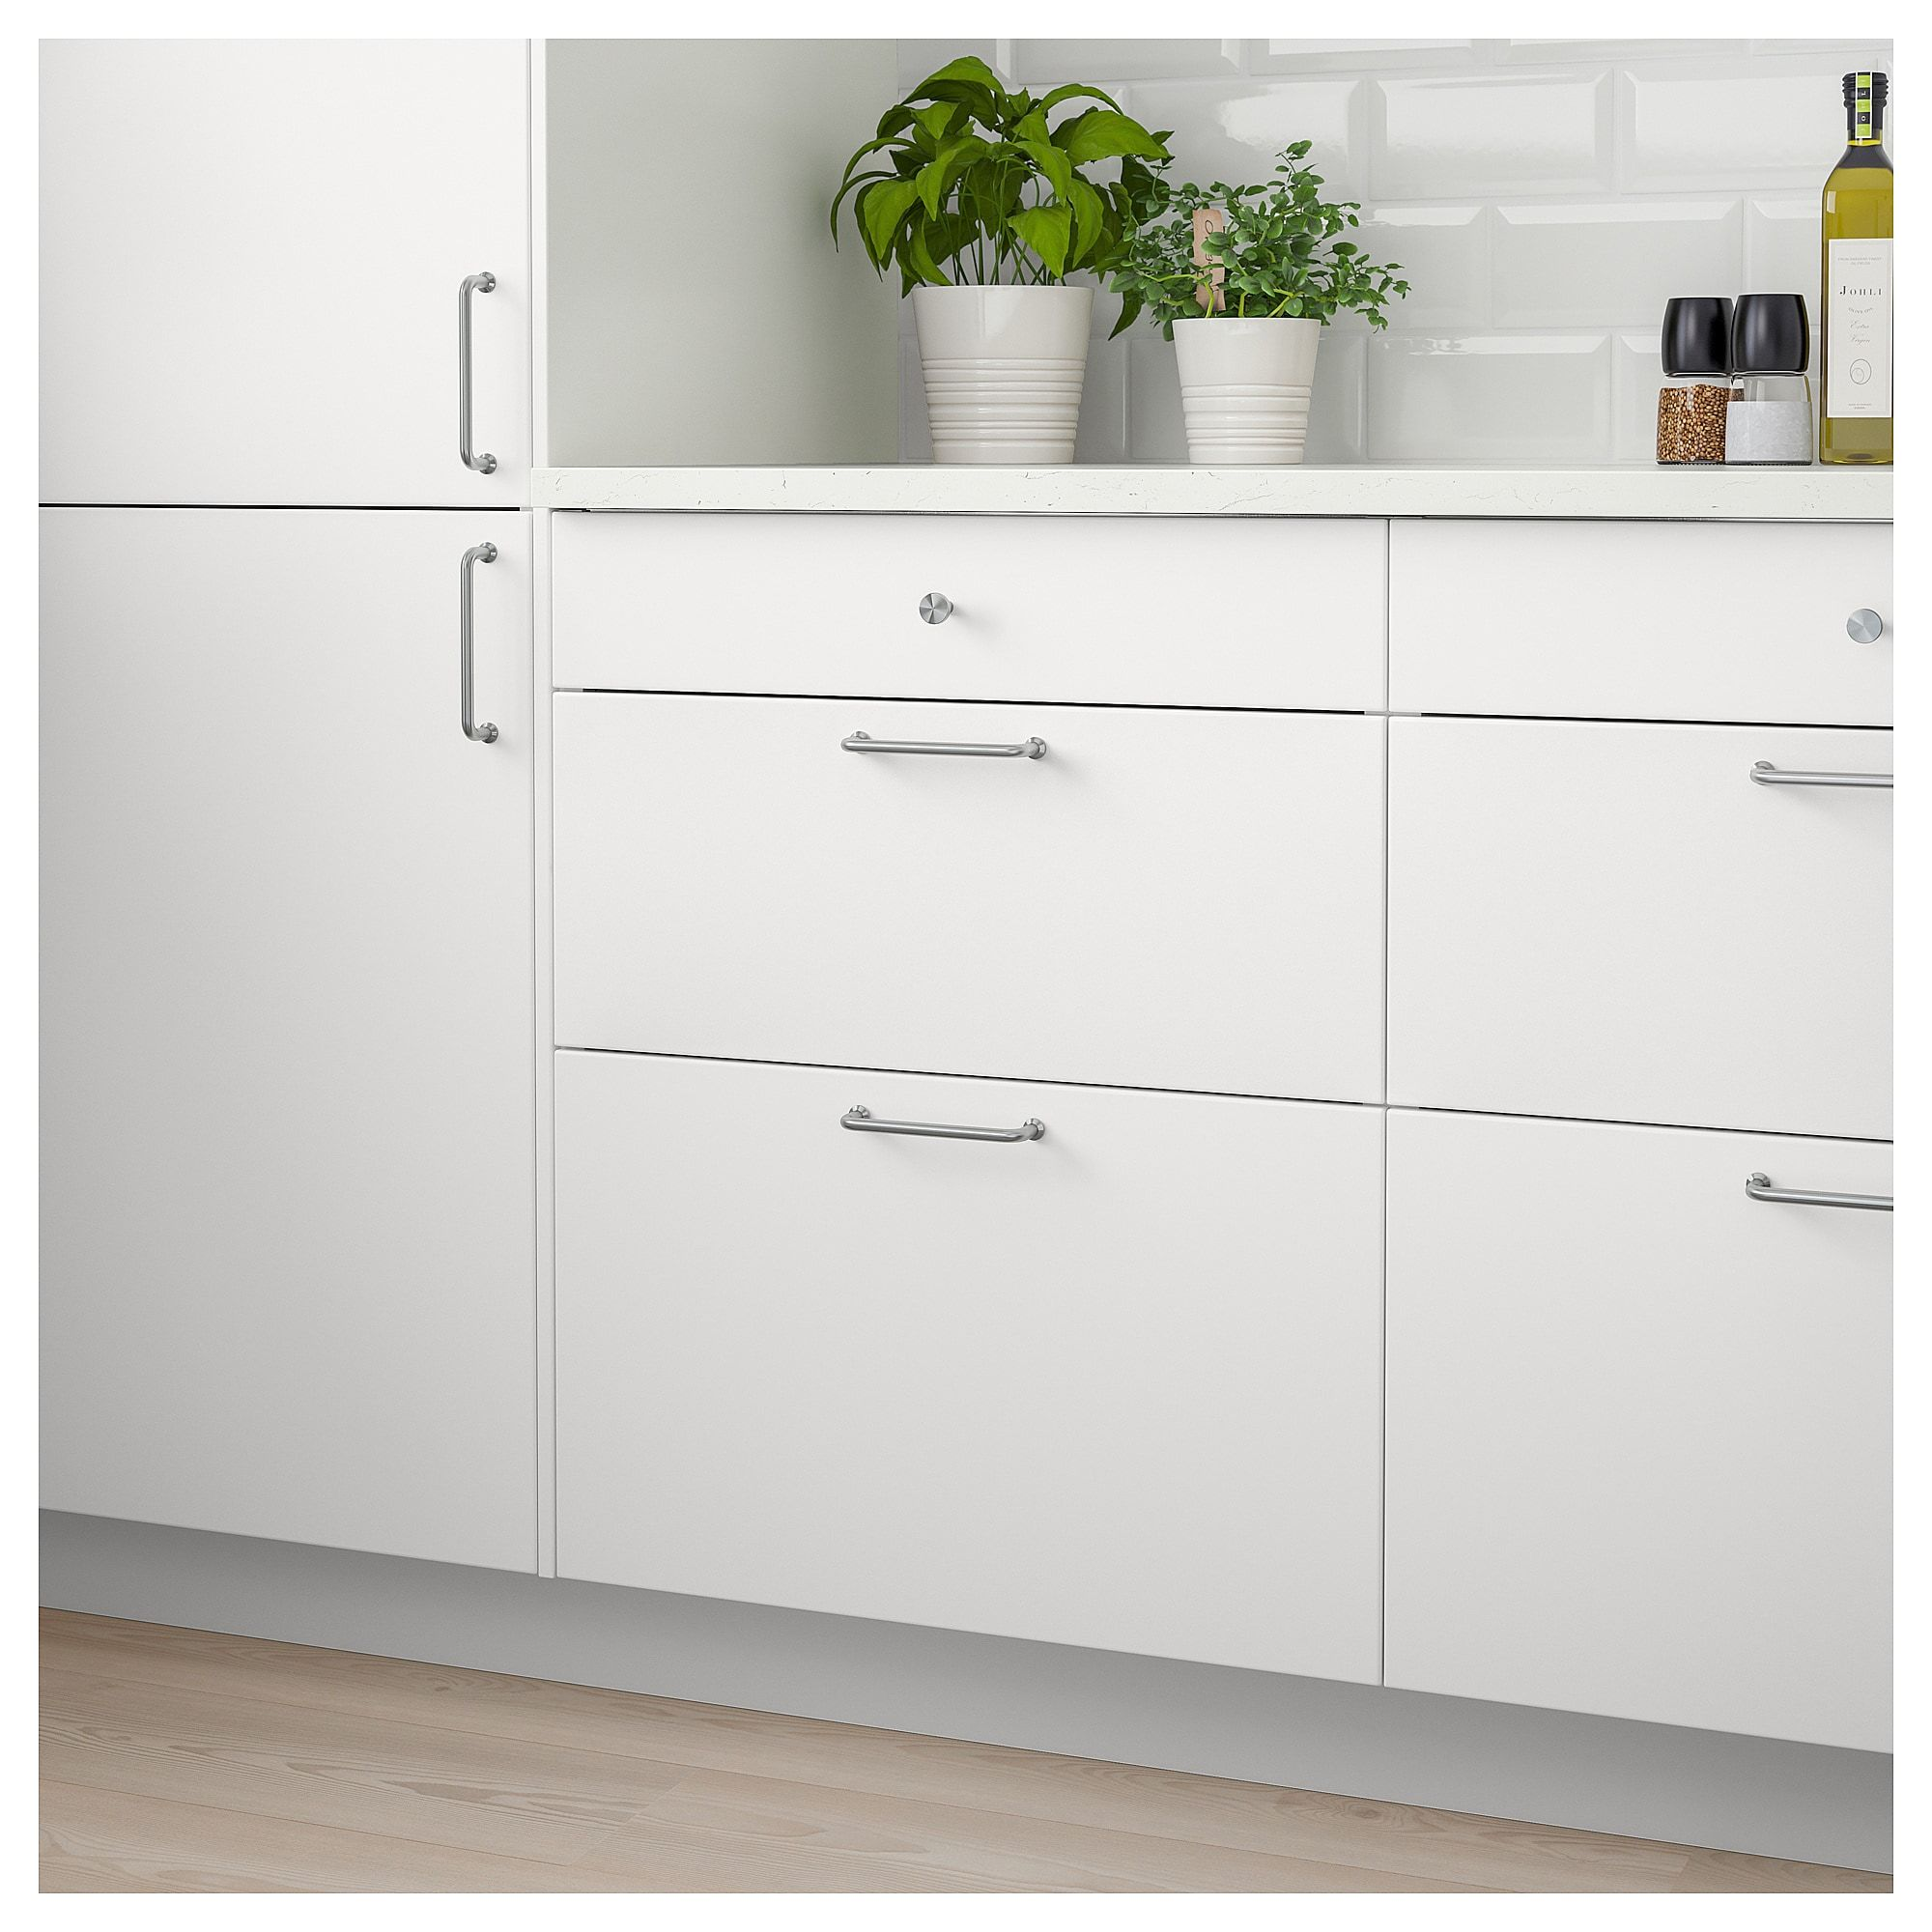 Küche Ikea Häggeby Ikea Veddinge Drawer Front White In 2019 Maison Drawer